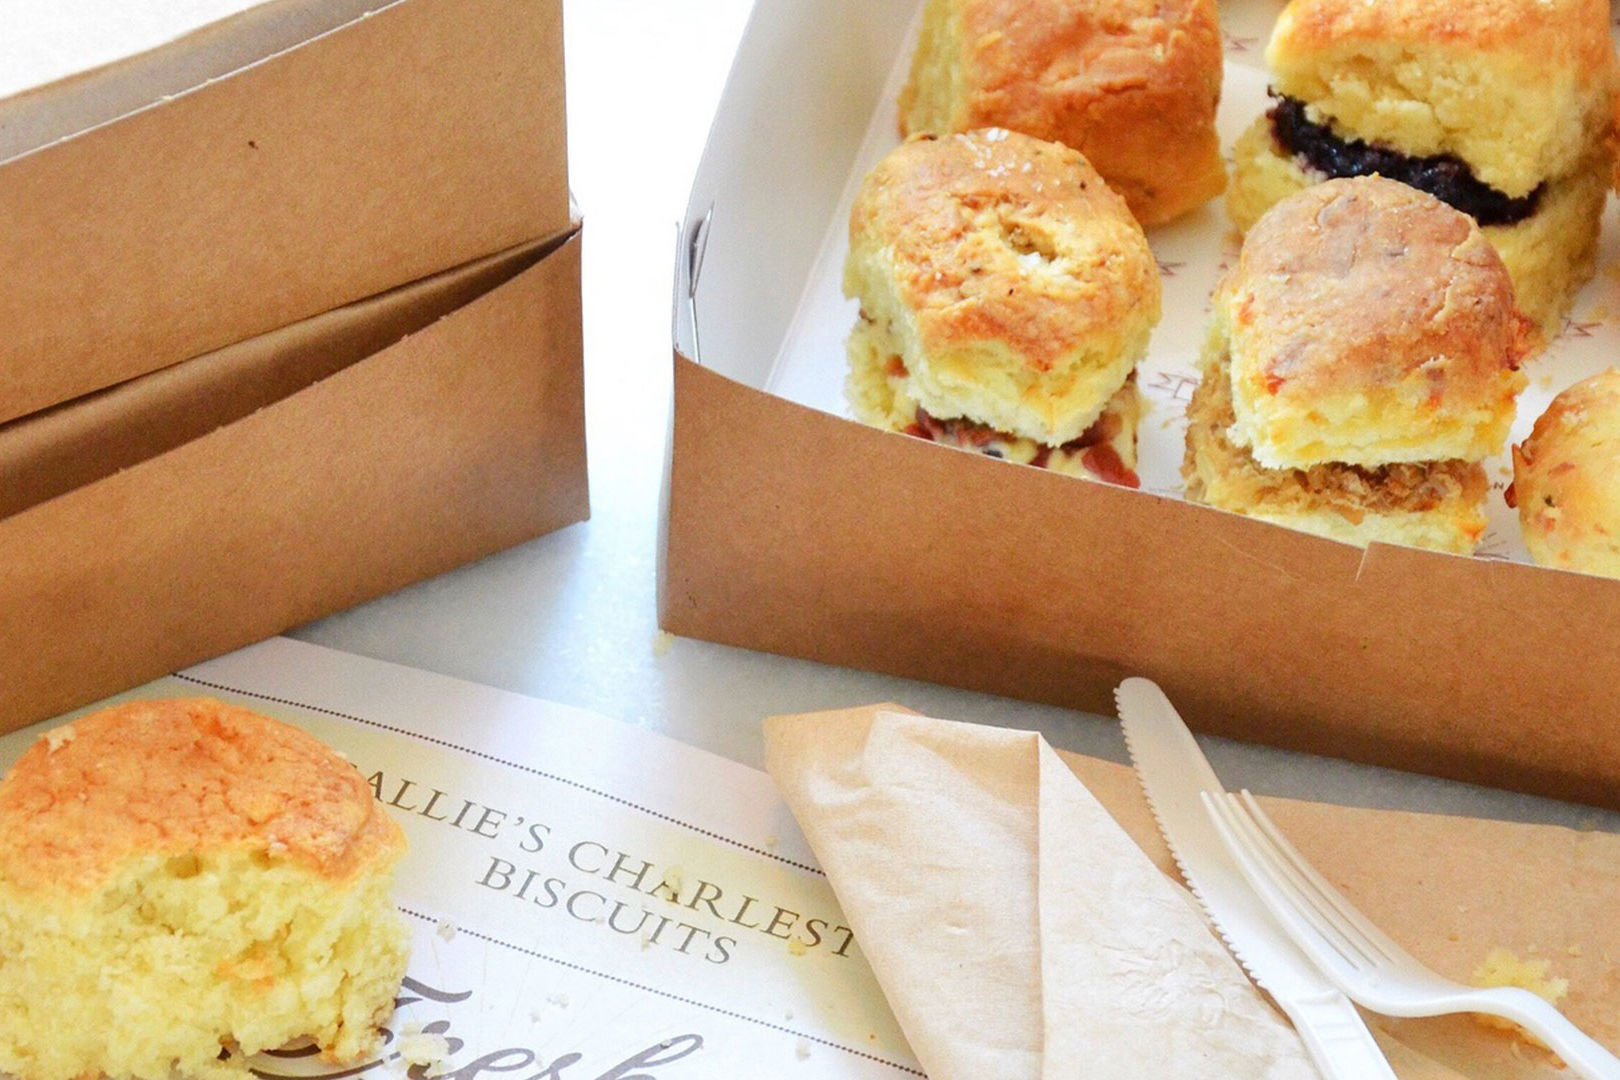 This Famous Southern Biscuit Shop is Coming to Charlotte